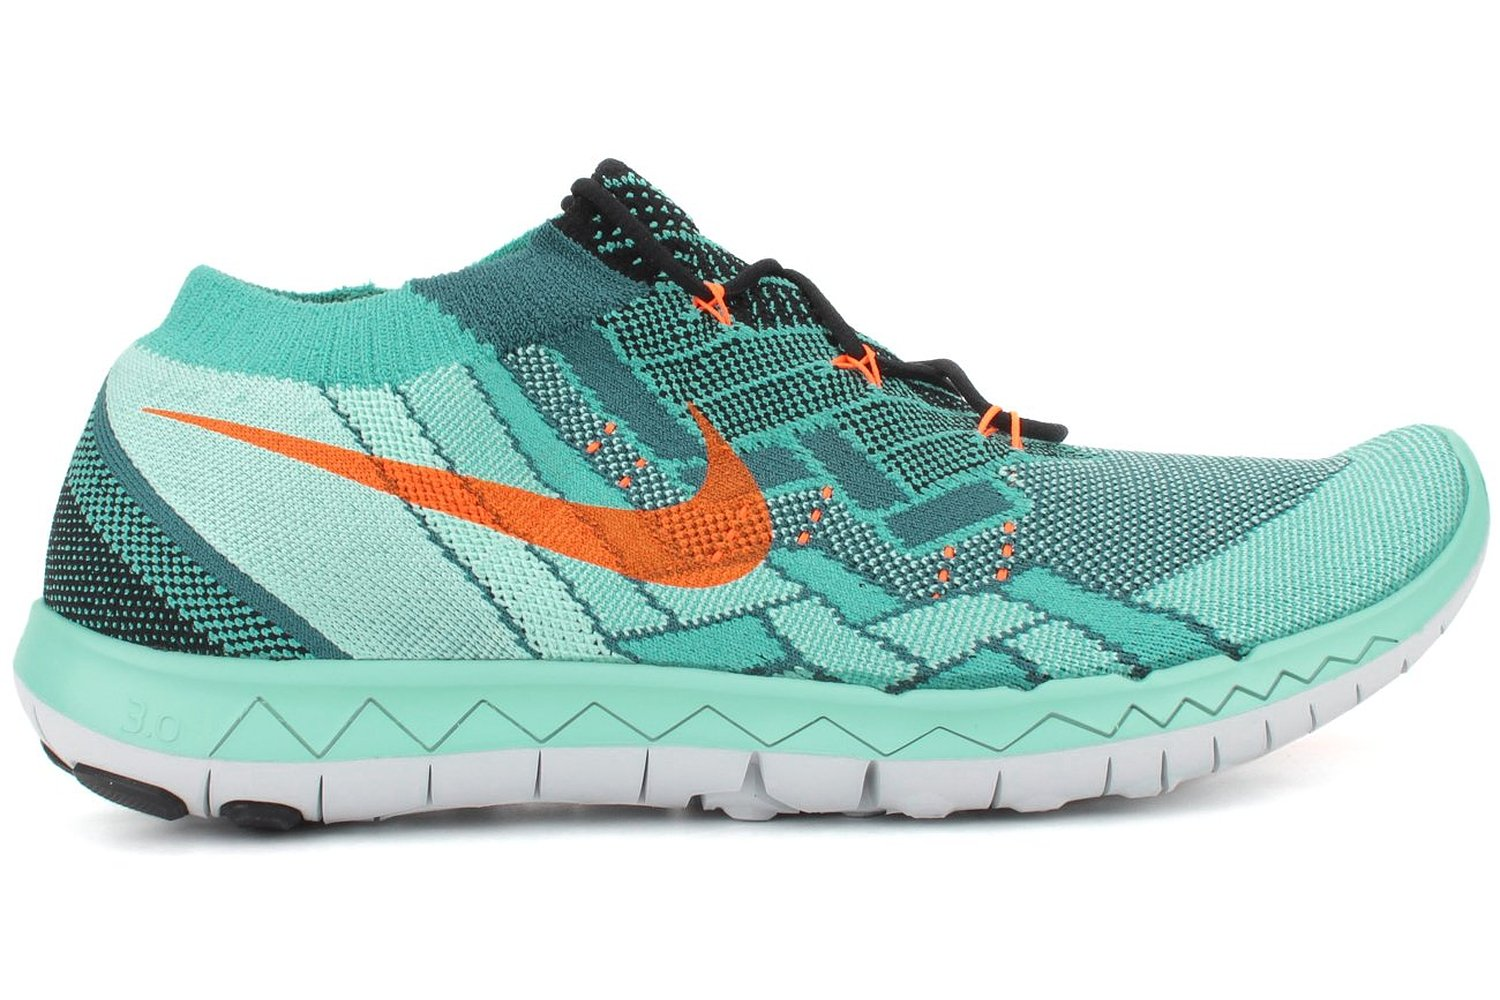 nike 39 s free 3 0 flyknit review best running shoes. Black Bedroom Furniture Sets. Home Design Ideas